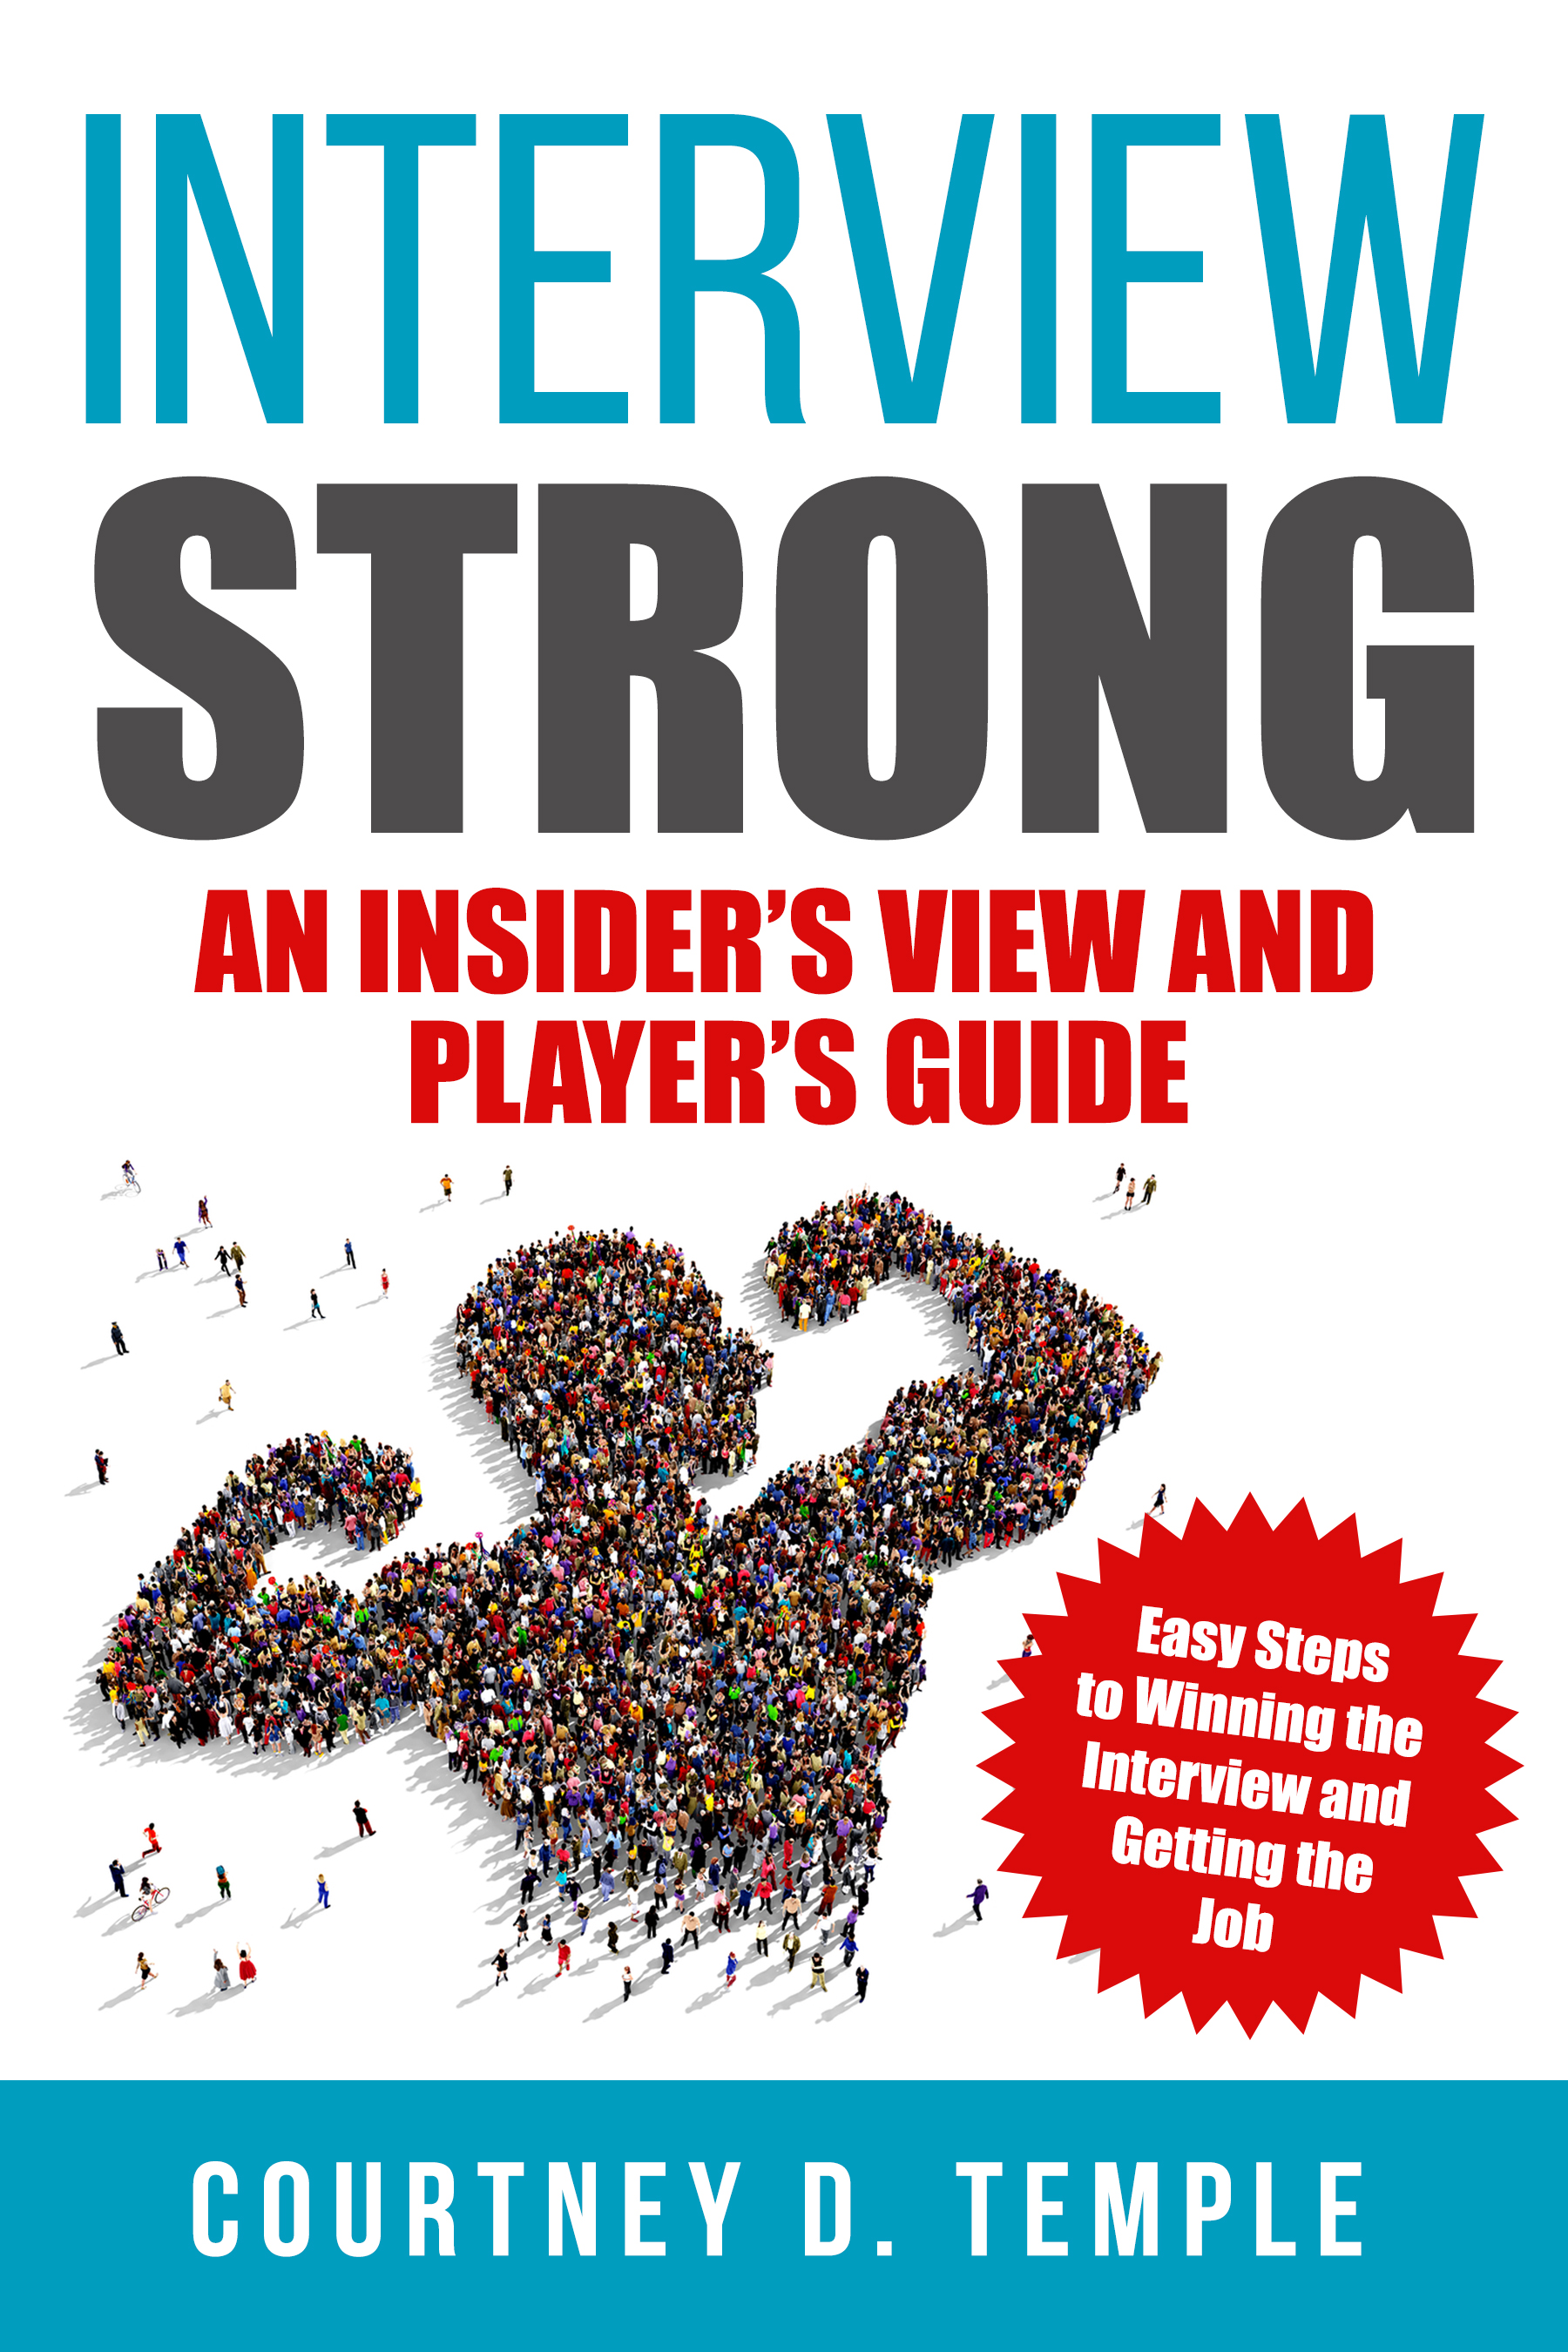 Courtney D. Temple Is Announcing The Launch Of Her New Book - Interview Strong: An Insider's View And Player's Guide